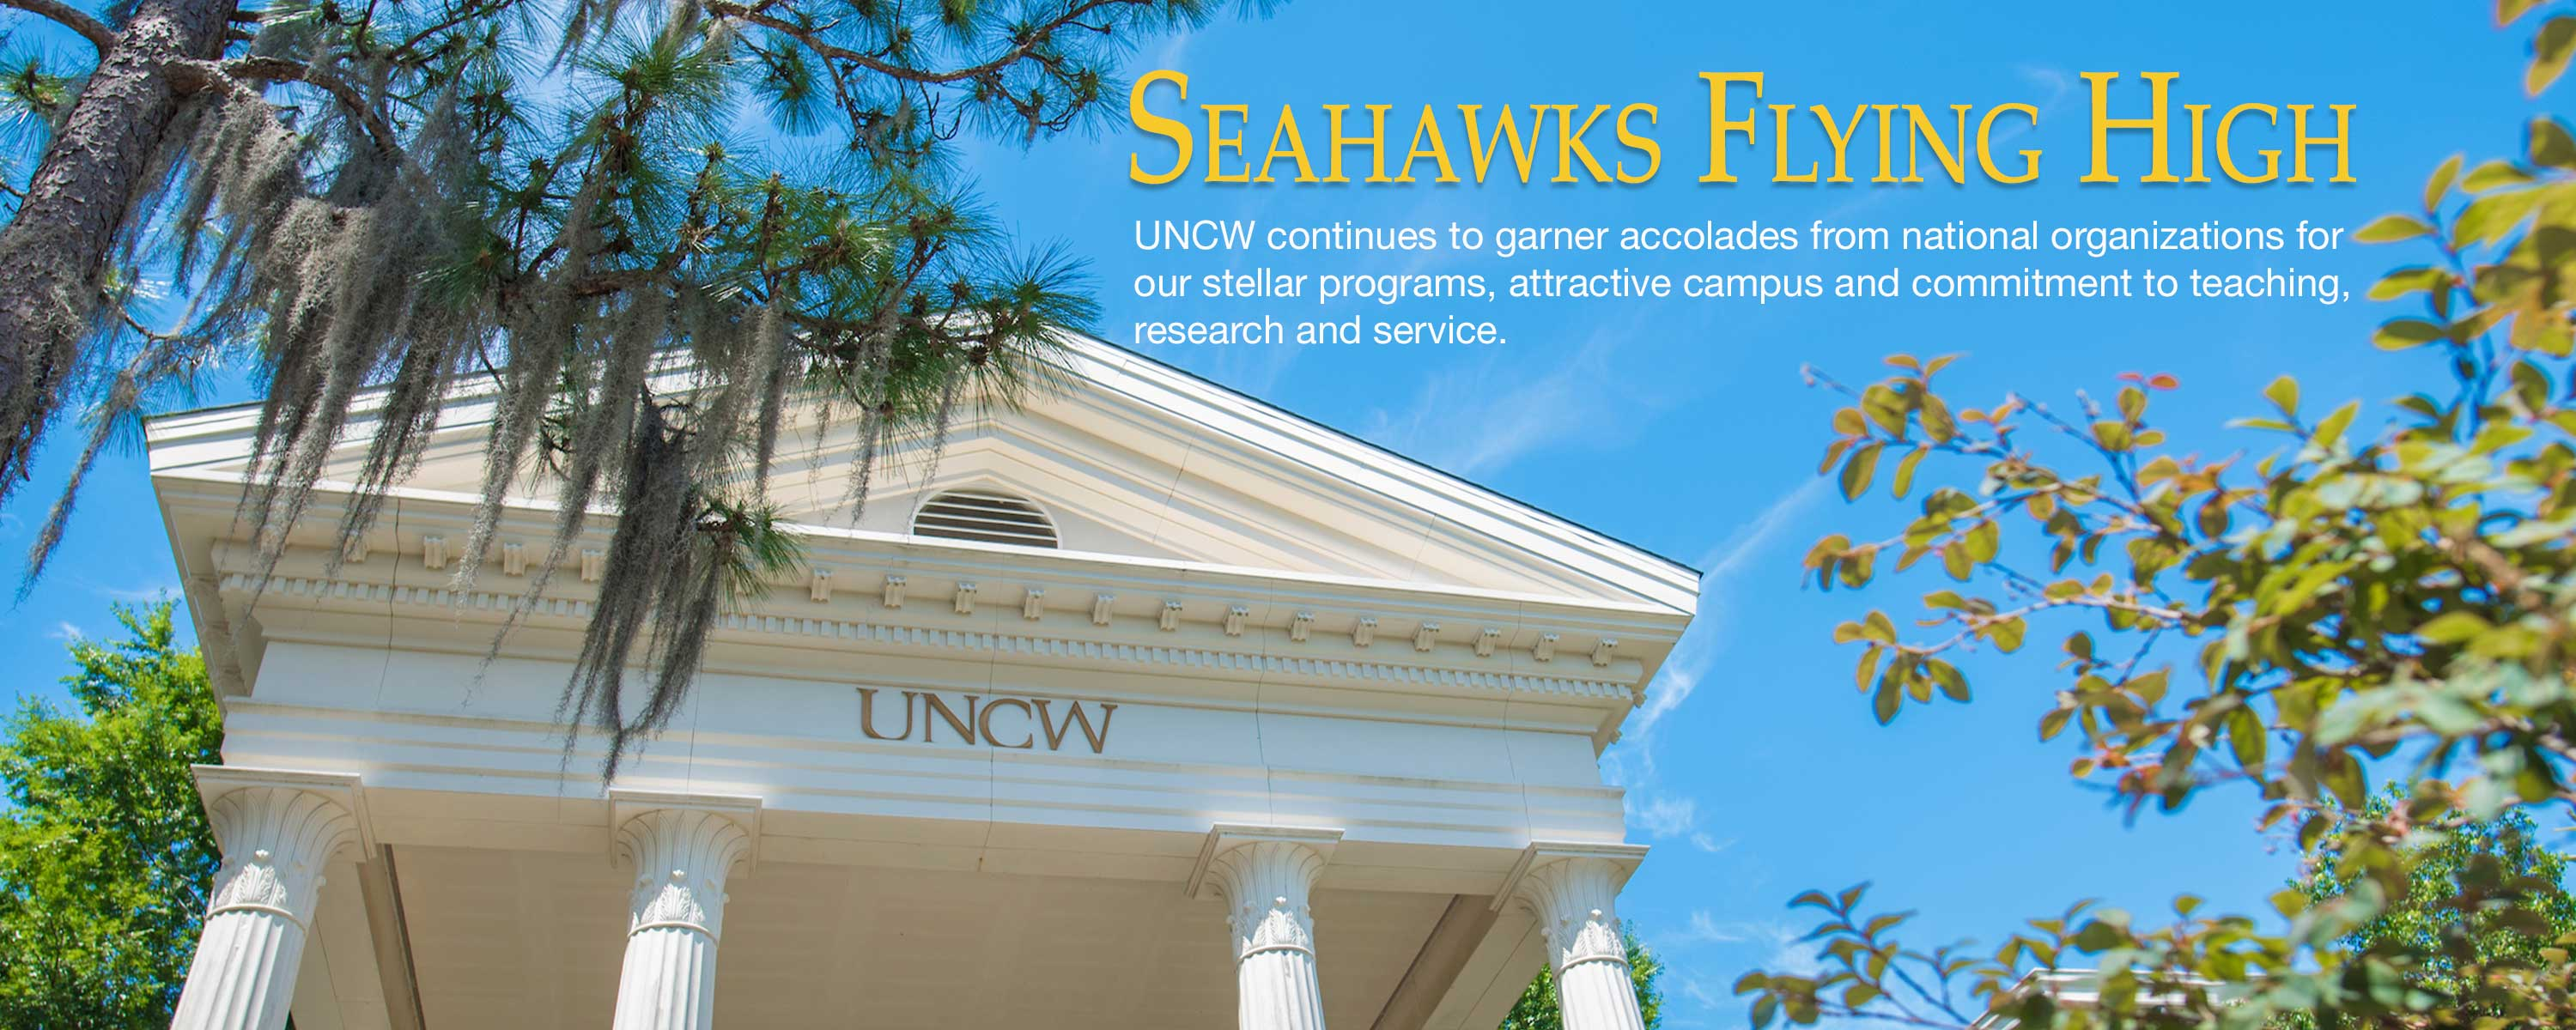 Leutze Hall - Seahawks Flying High. UNCW continues to garner accolades from national organizations for stellar programs, our attractive campus and commitment to teaching, research and service.